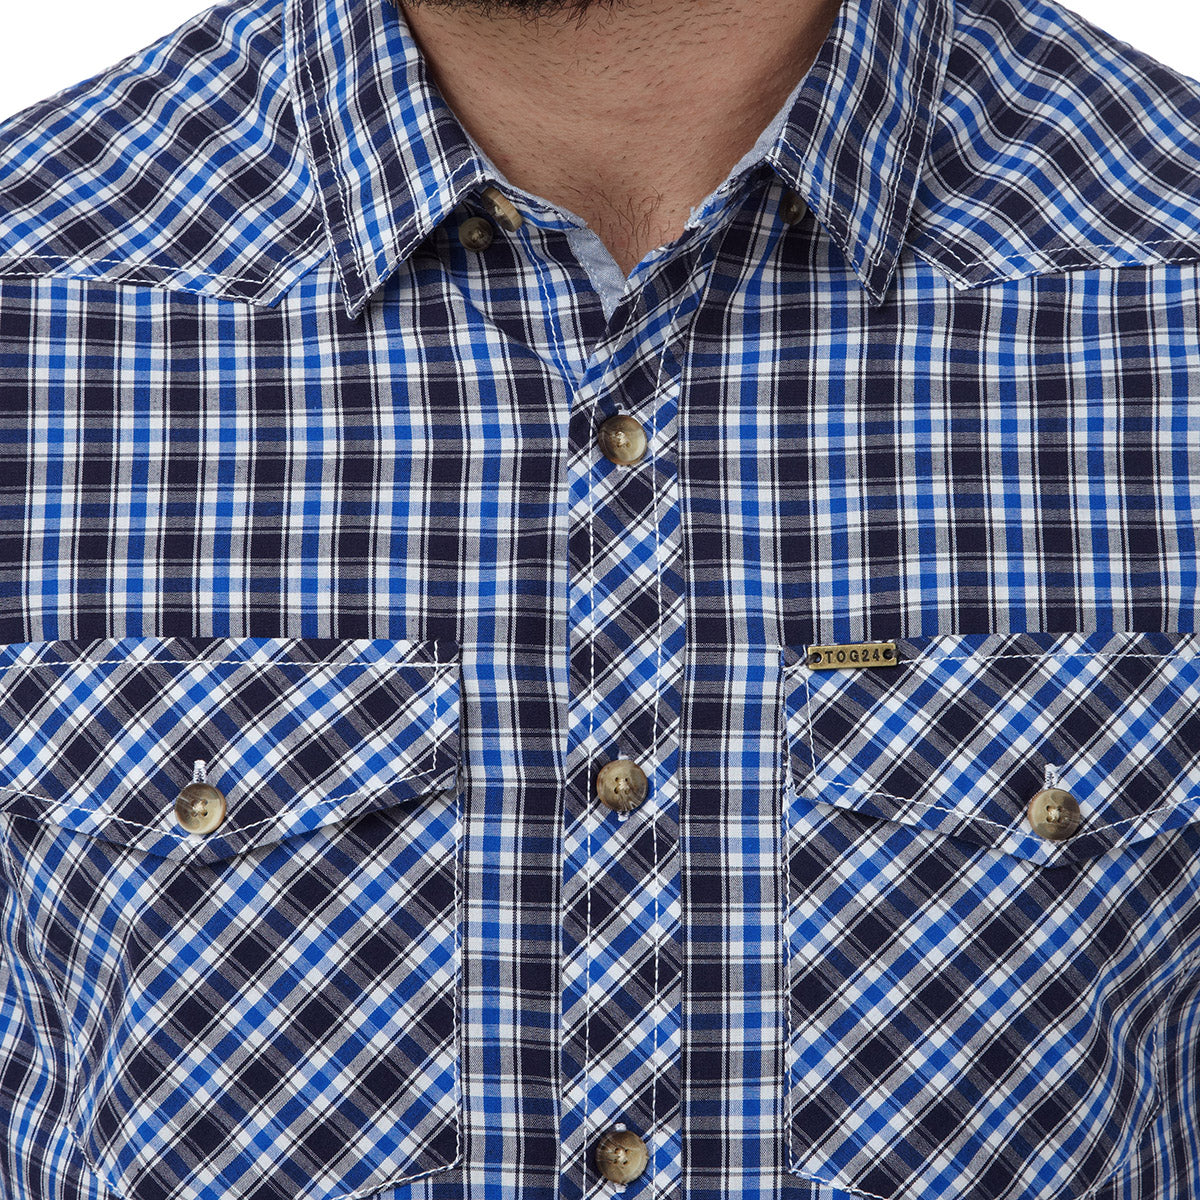 Oliver Mens TCZ Cotton Shirt - Ocean Check image 4